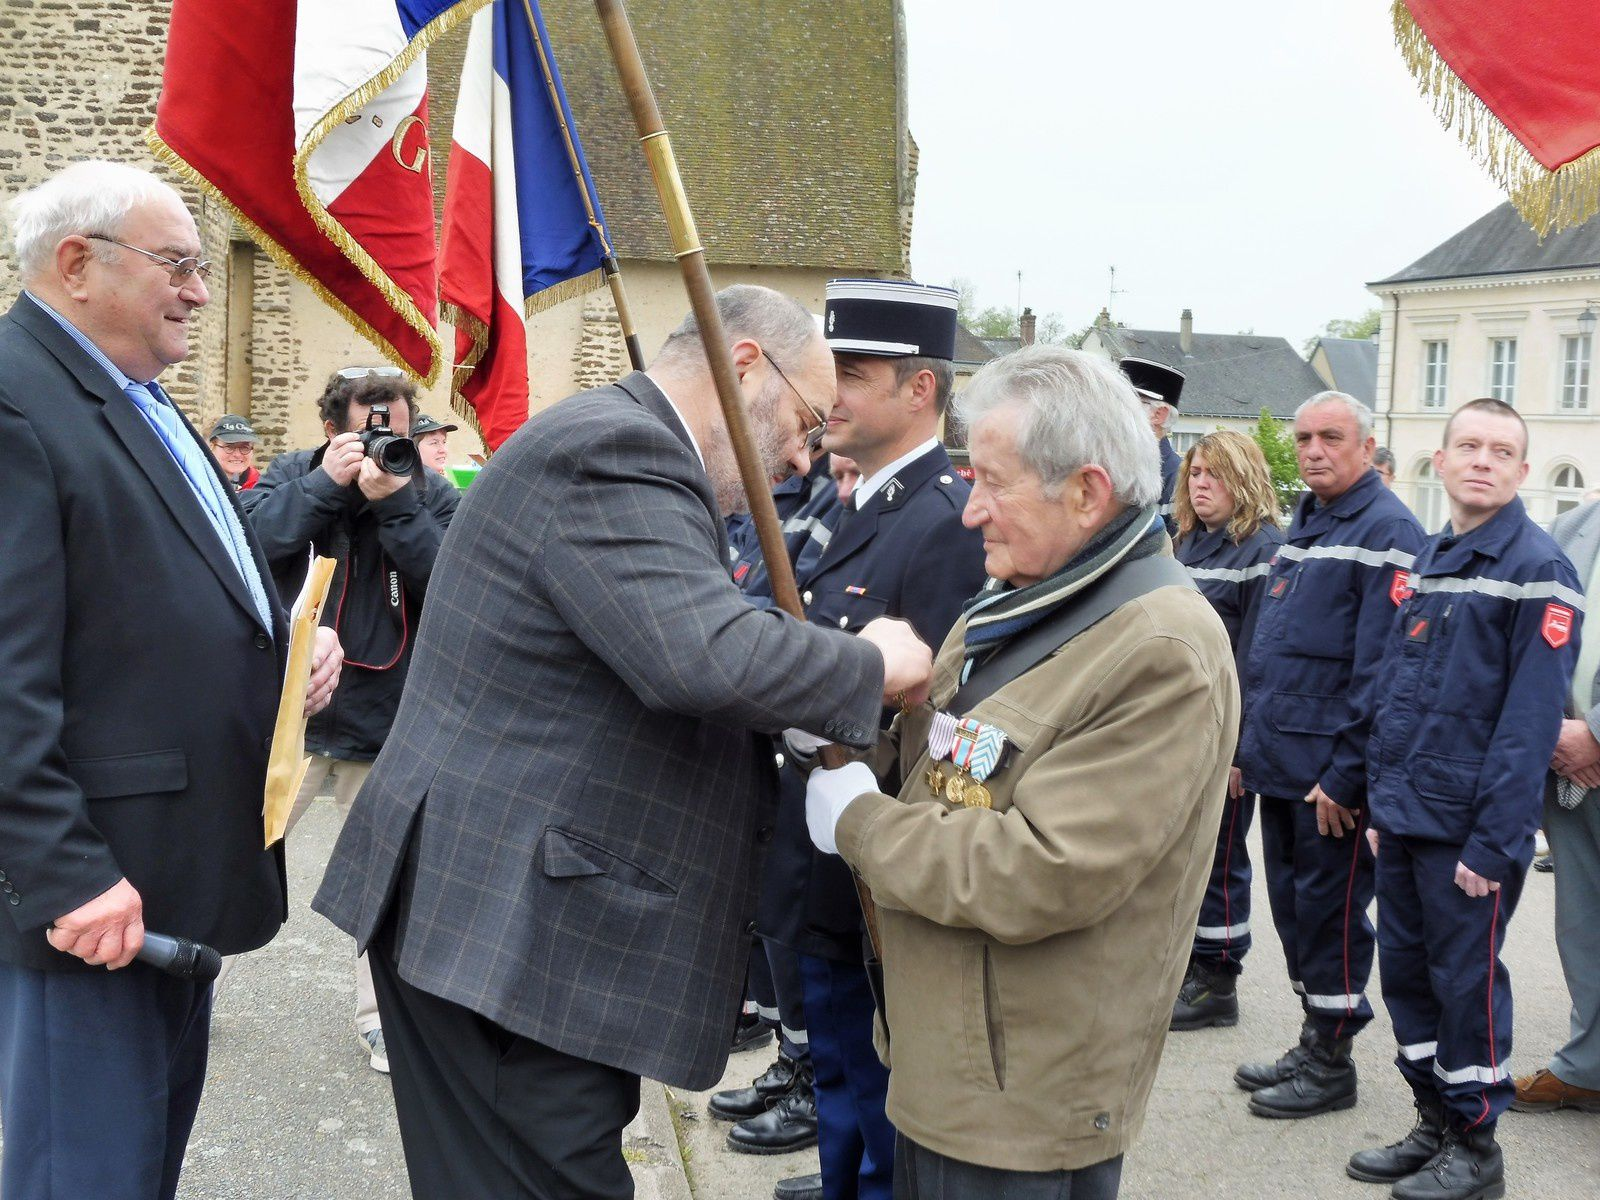 remise de la distinction à Mr Michel Guillon